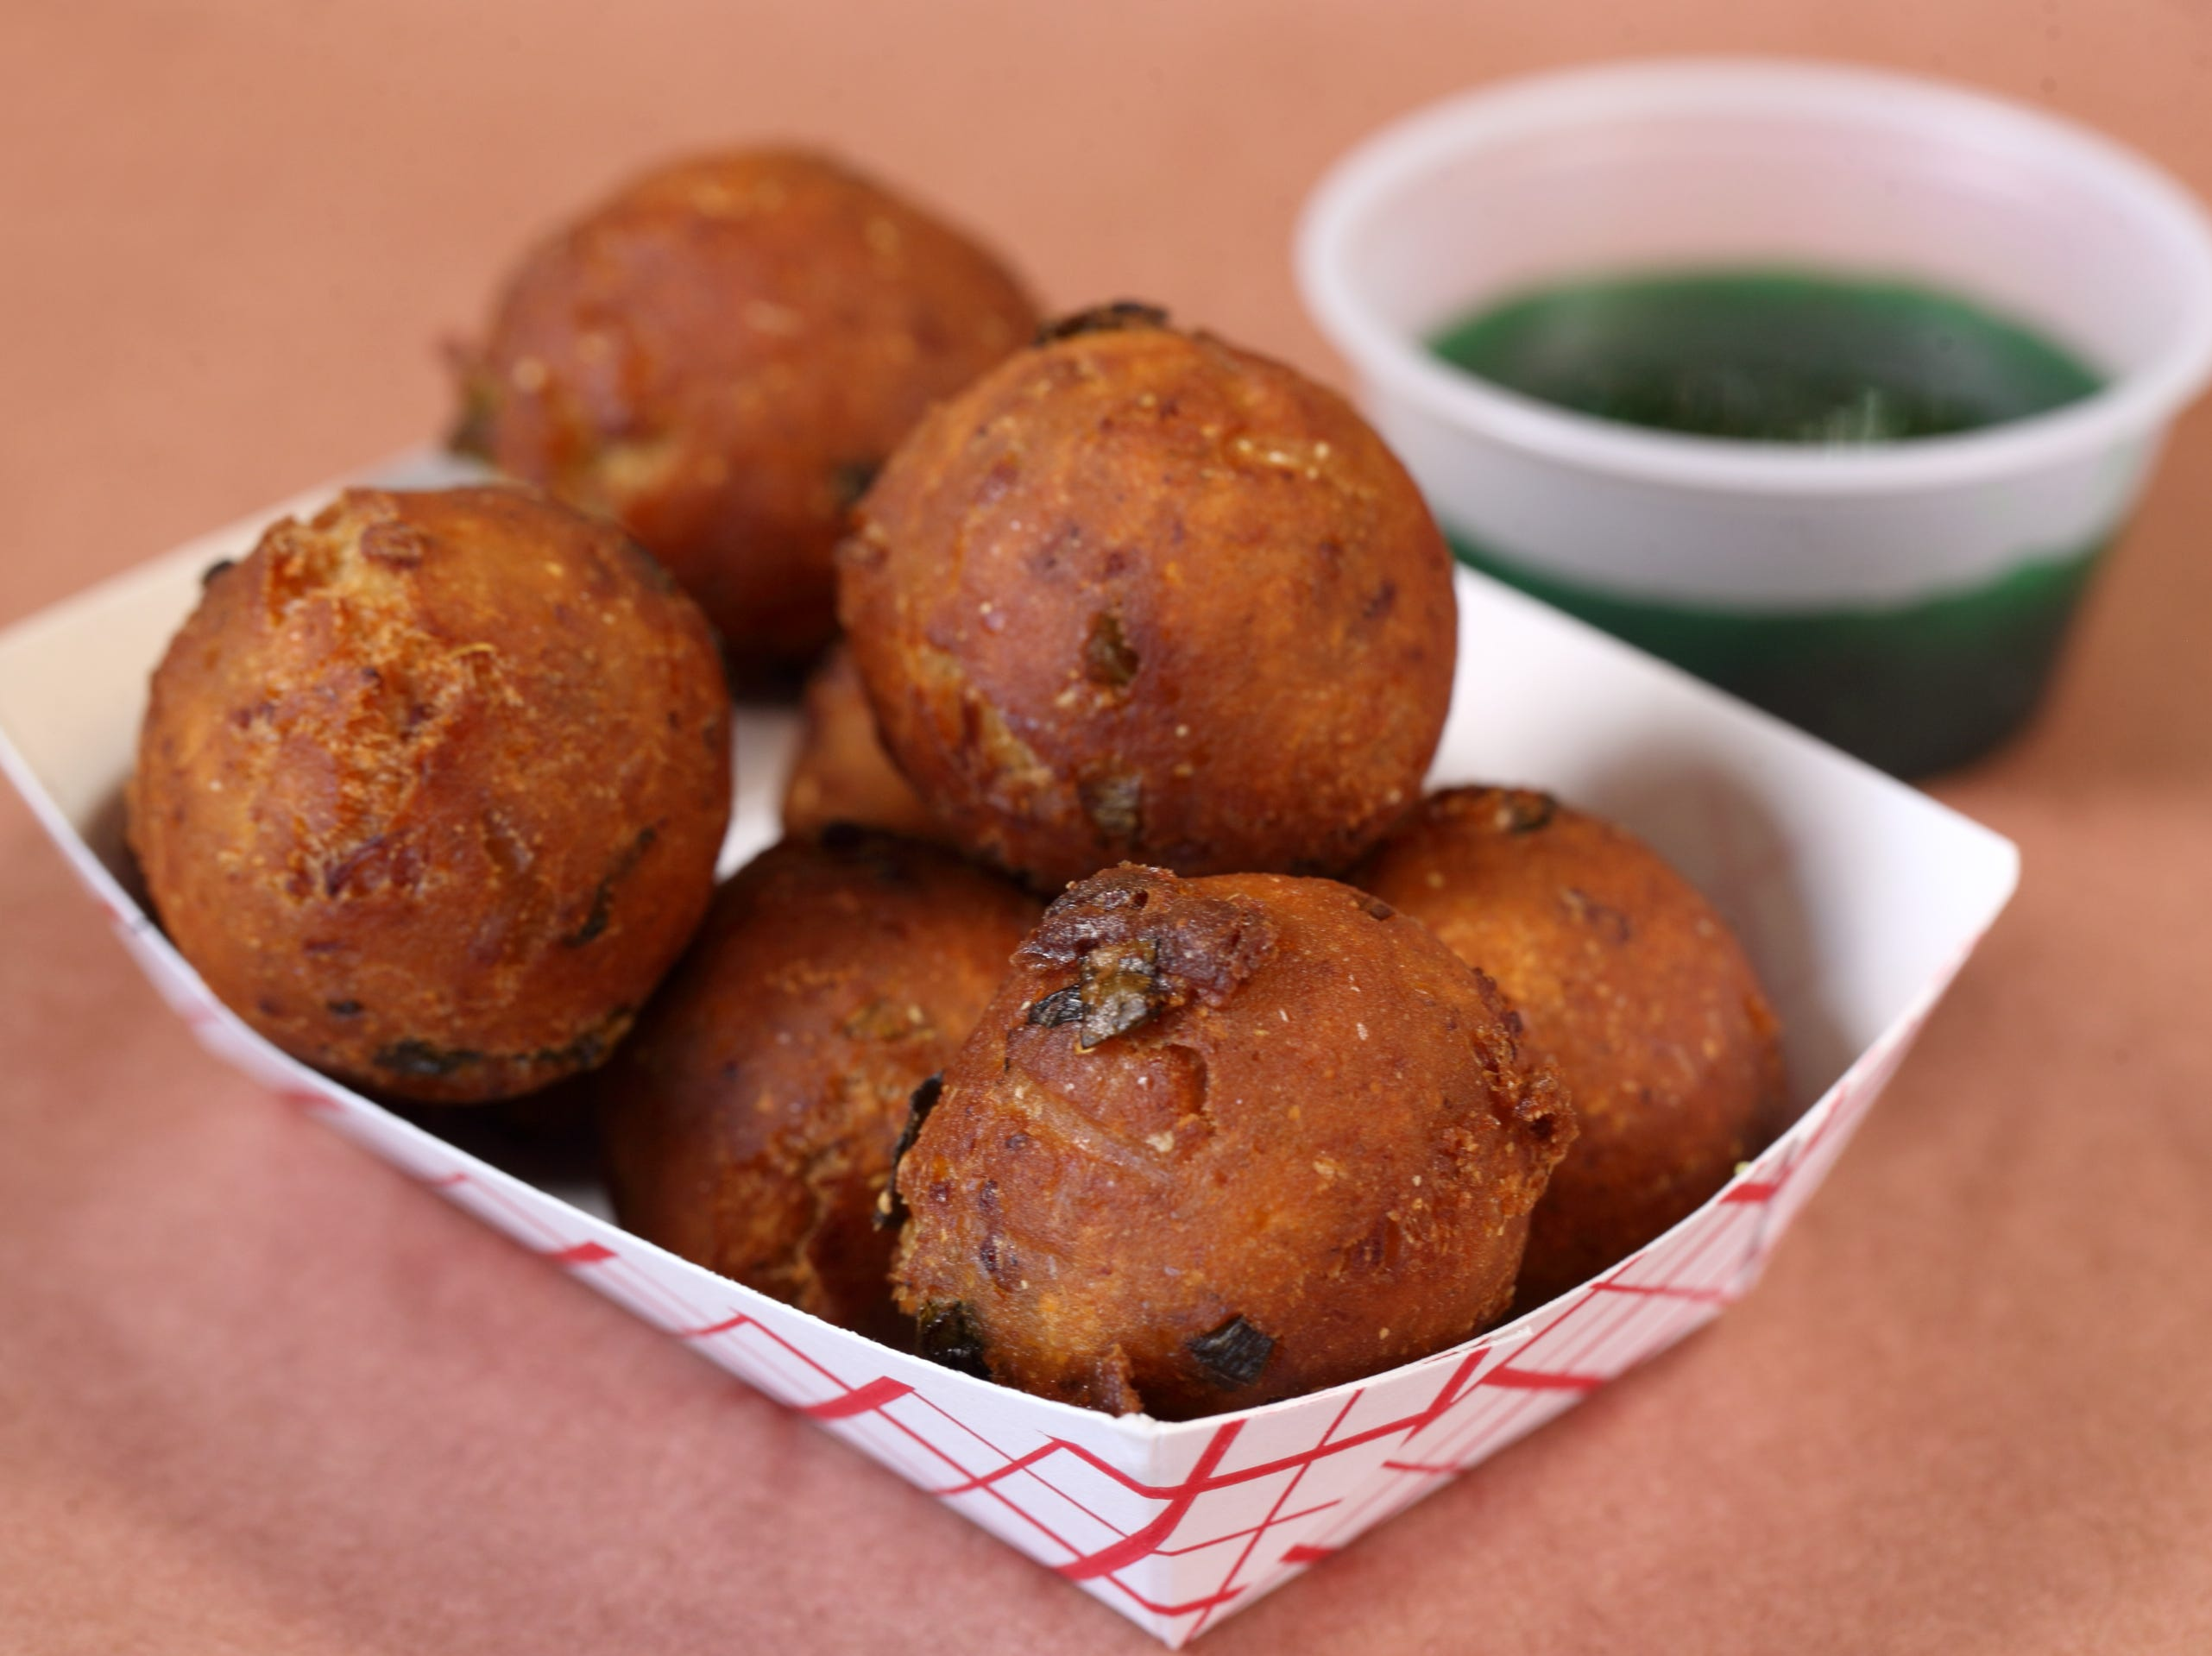 Hushpuppies on the menu at Sugarfire coming to Union.